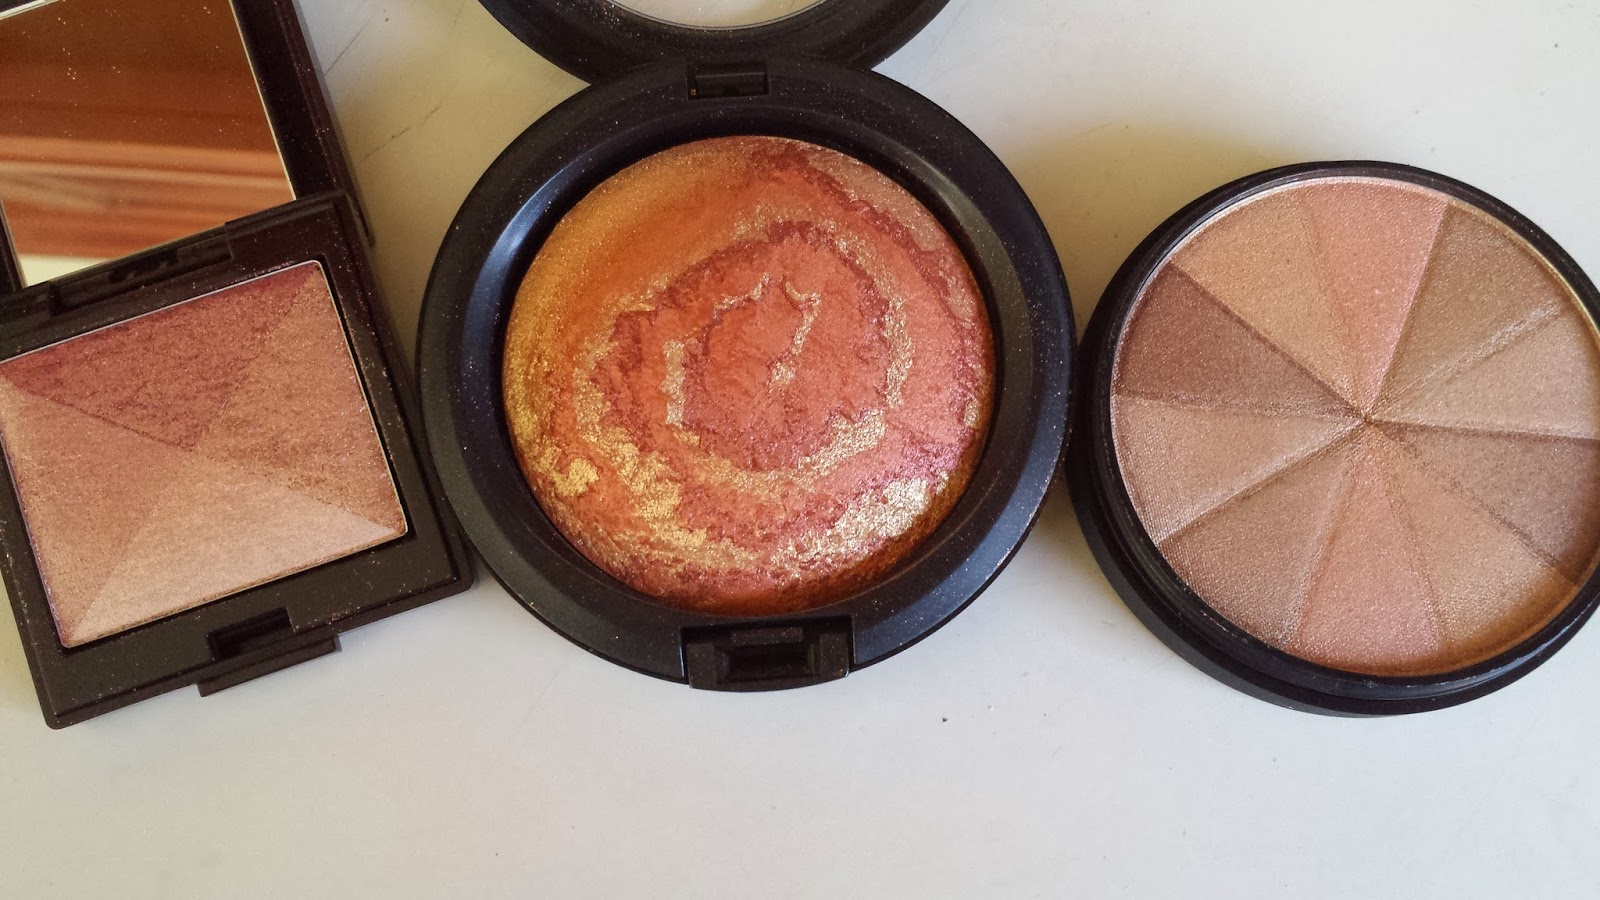 Laura Mercier 'Pink Mosaic' Shimmer Bloc, M.A.C 'Centre of The Universe' Mineralized Skinfinish, Smashbox 'Baked Starburst' - www.modenmakeup.com